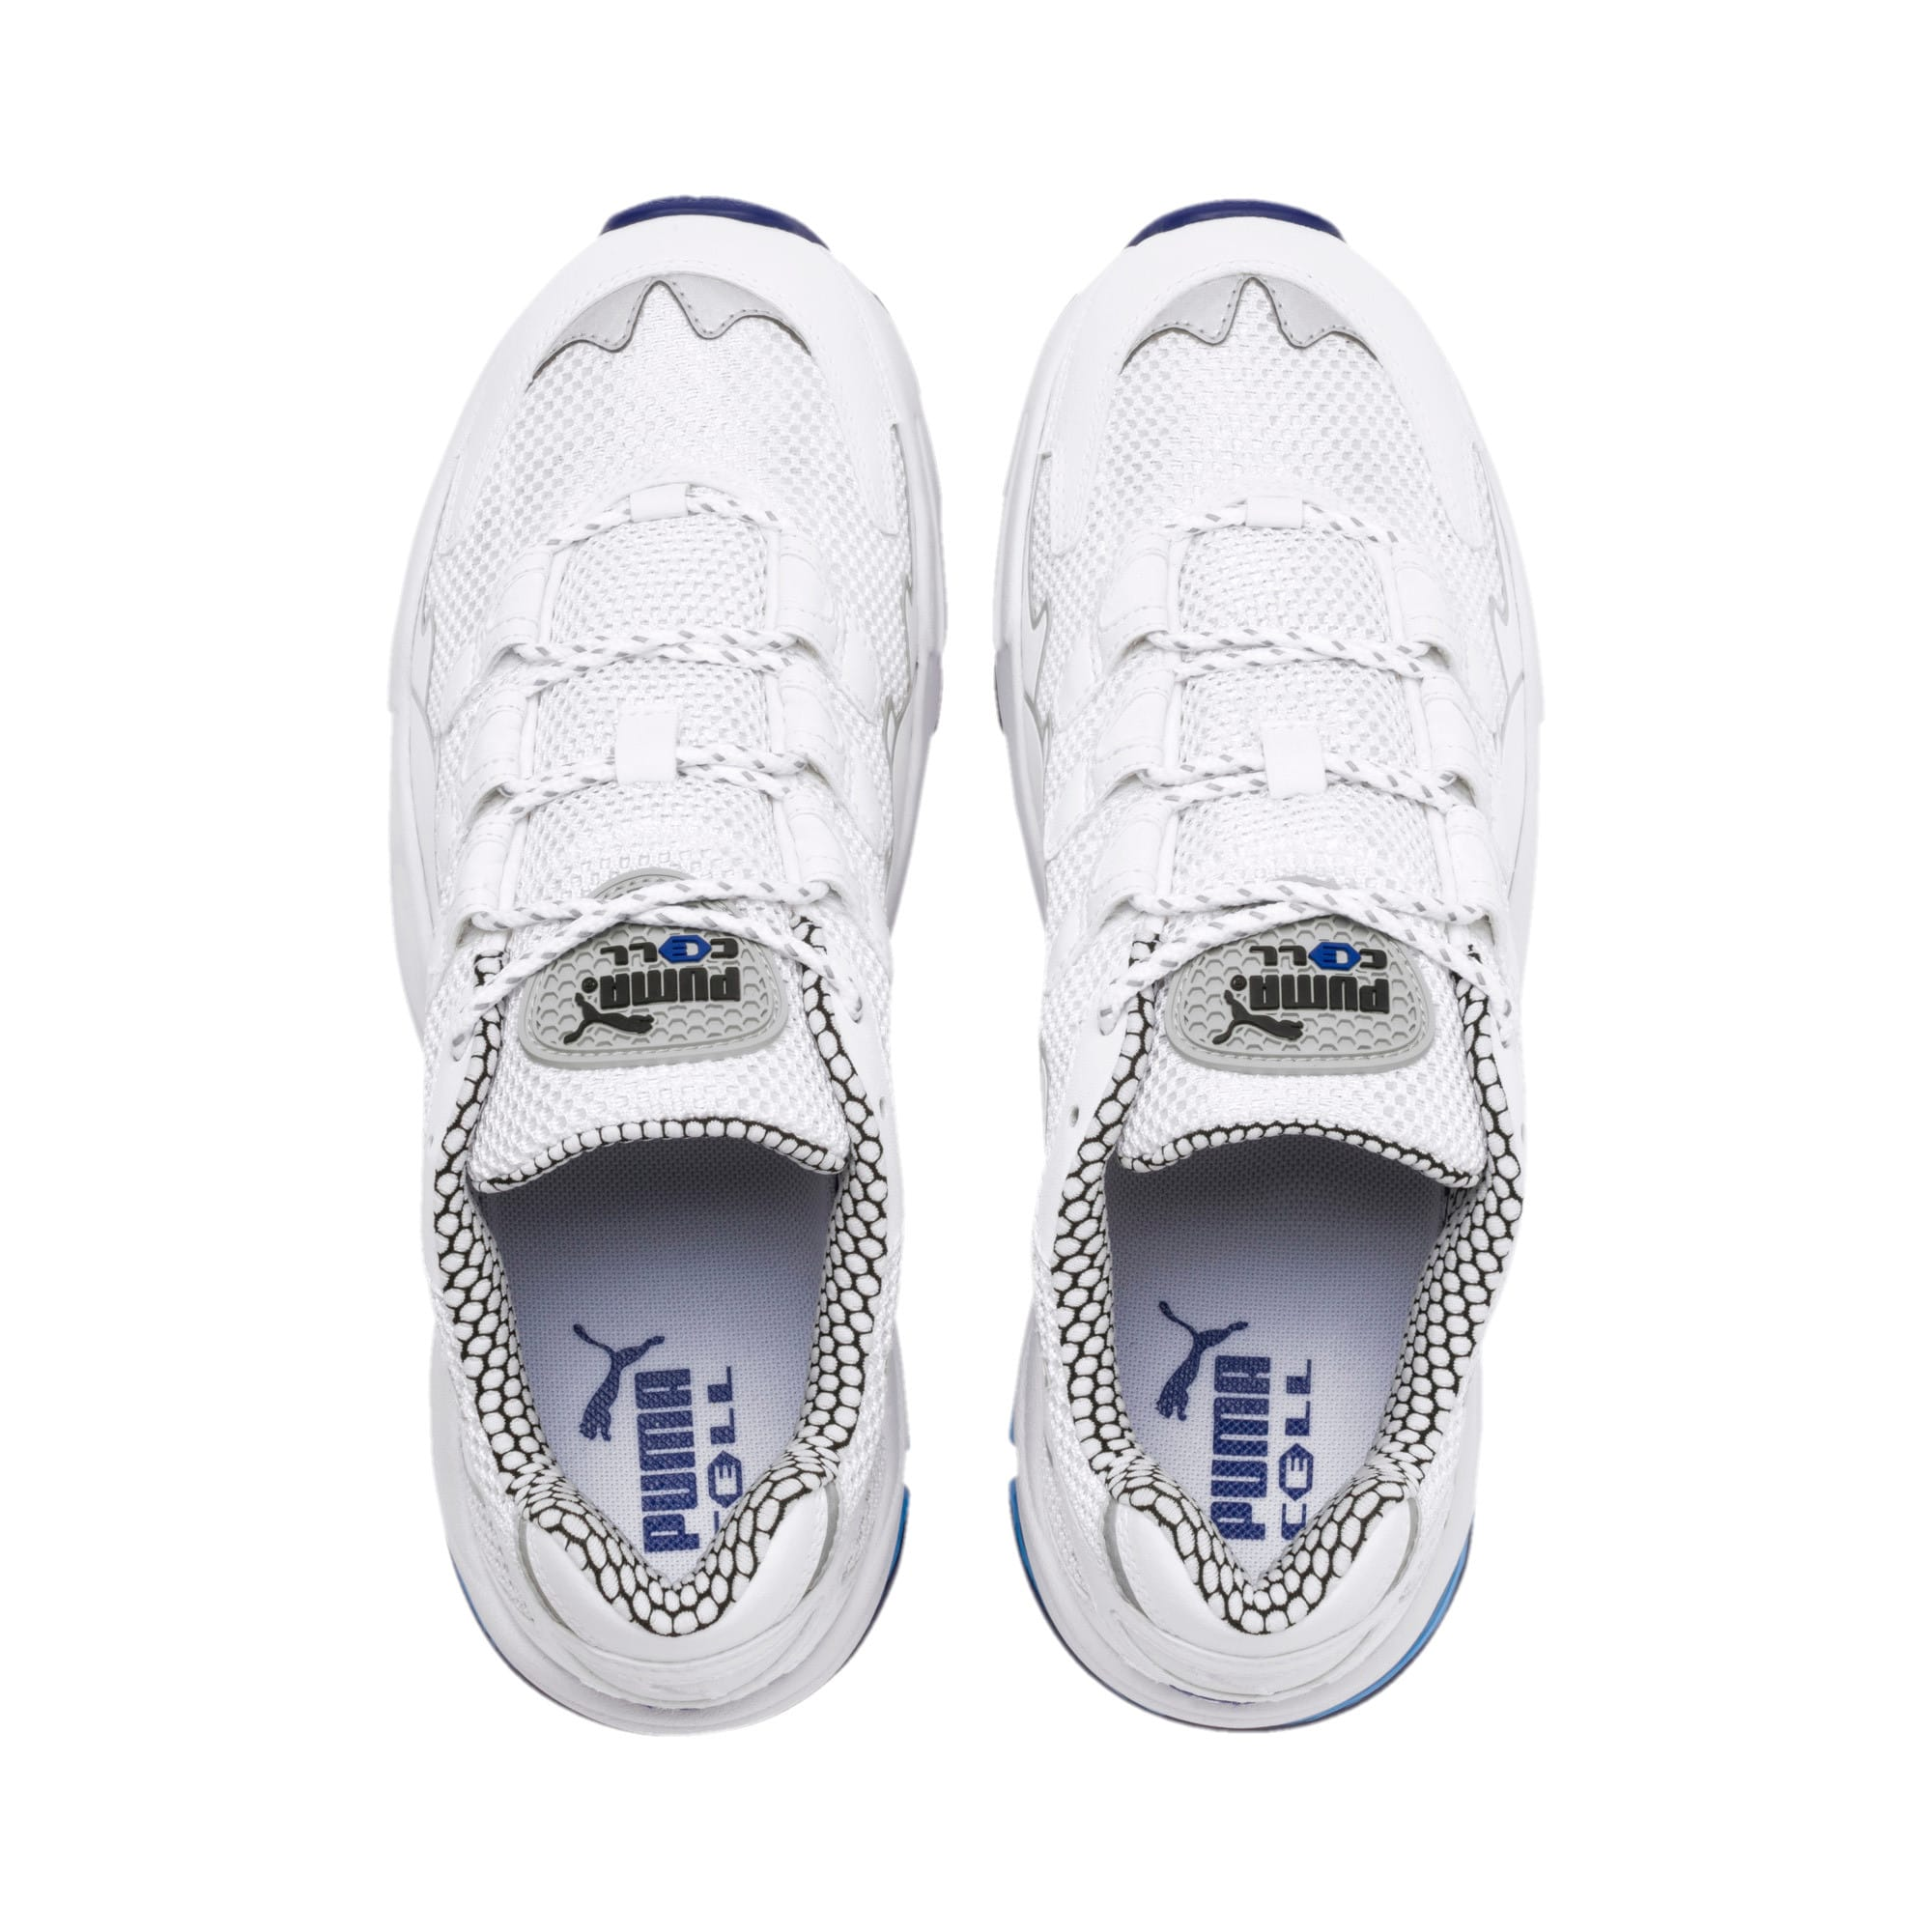 Thumbnail 7 of CELL Alien Kotto sportschoenen, Puma White-Puma White, medium